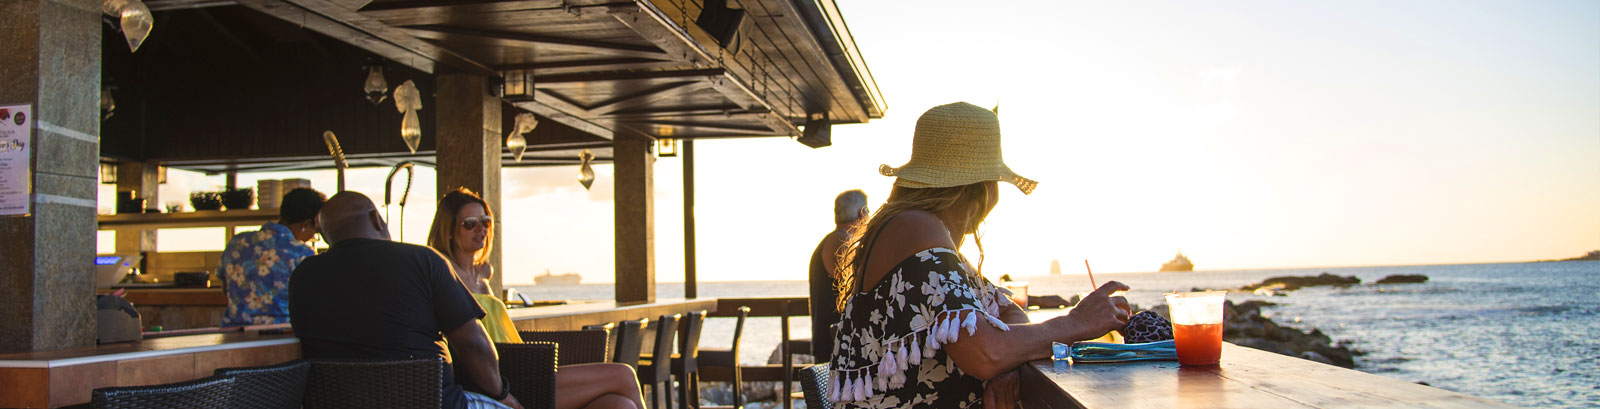 Coco Beach Bar - Our recommendations at Simpson Bay Resort, Marina & Spa